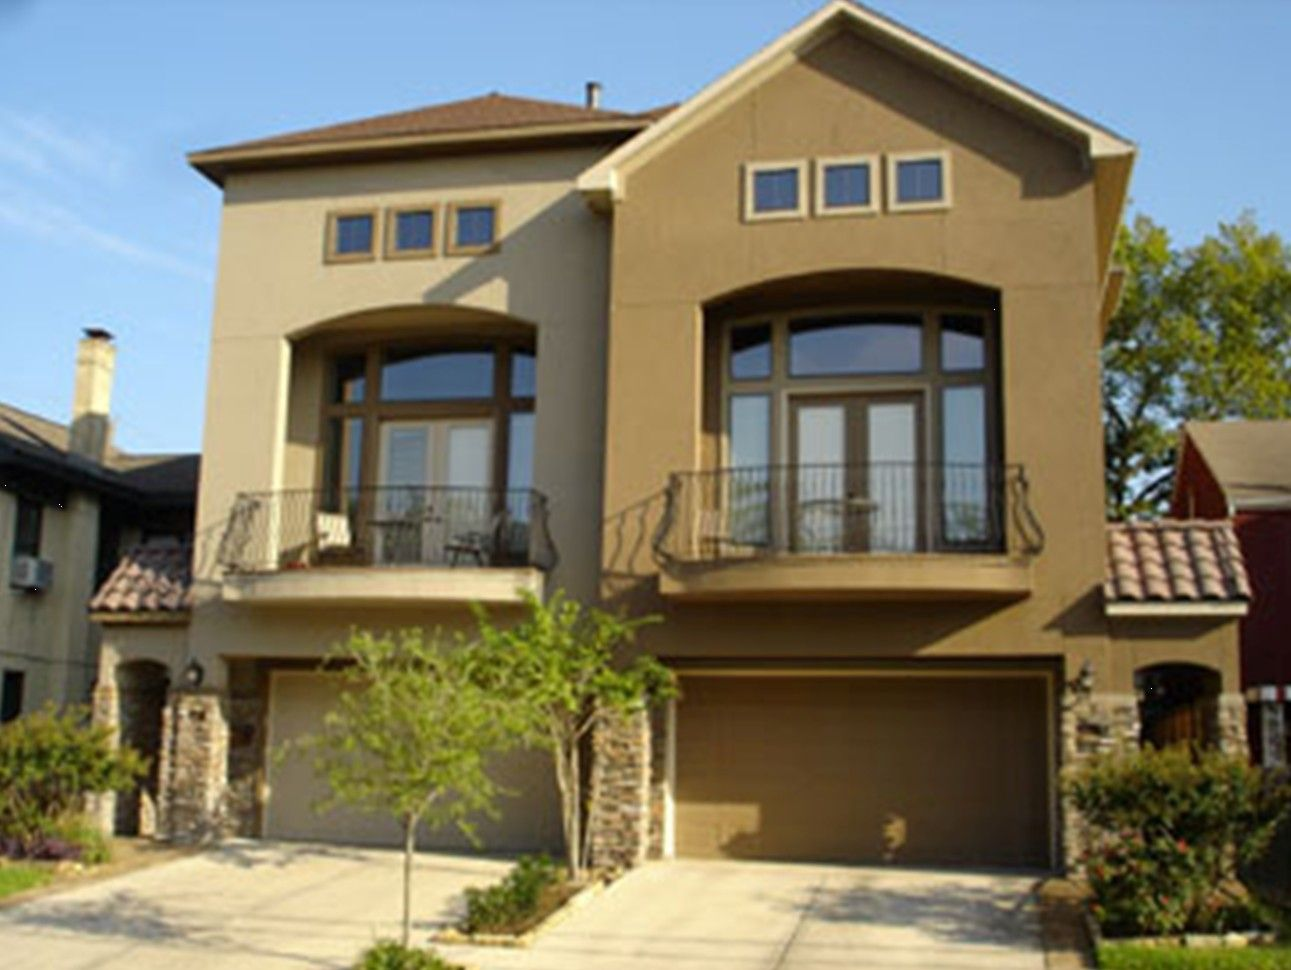 Exterior House Ideas Exterior Paint Schemes With Stucco And Stone Stucco Homes Best Exterior Paint Stucco House Colors